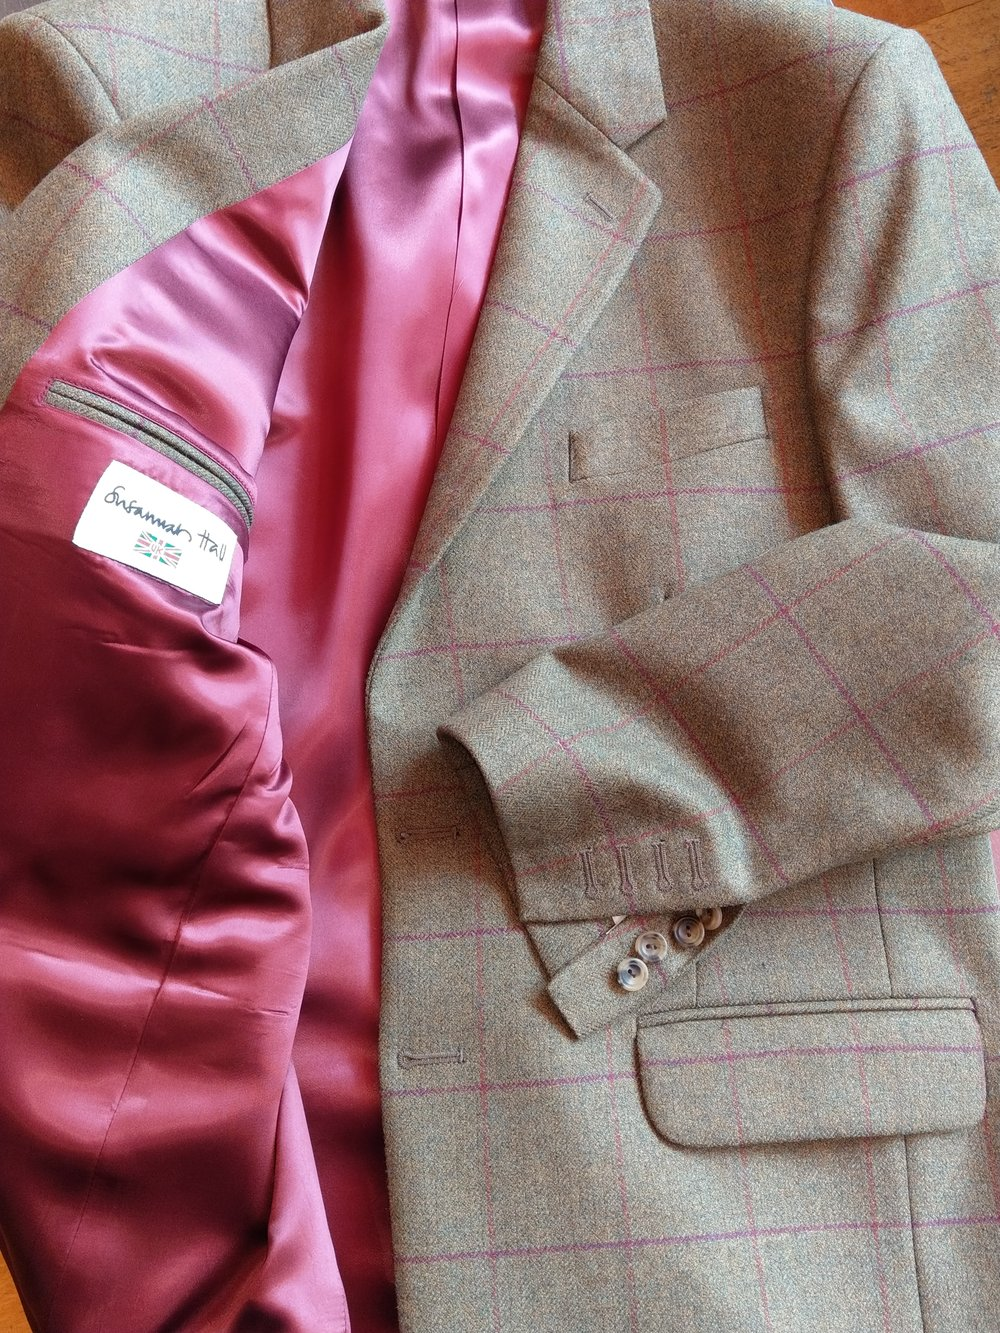 tweed-jacket-bespoke-tailor-johnstons-elgin-susannah-hall-made-britain-uk.jpg